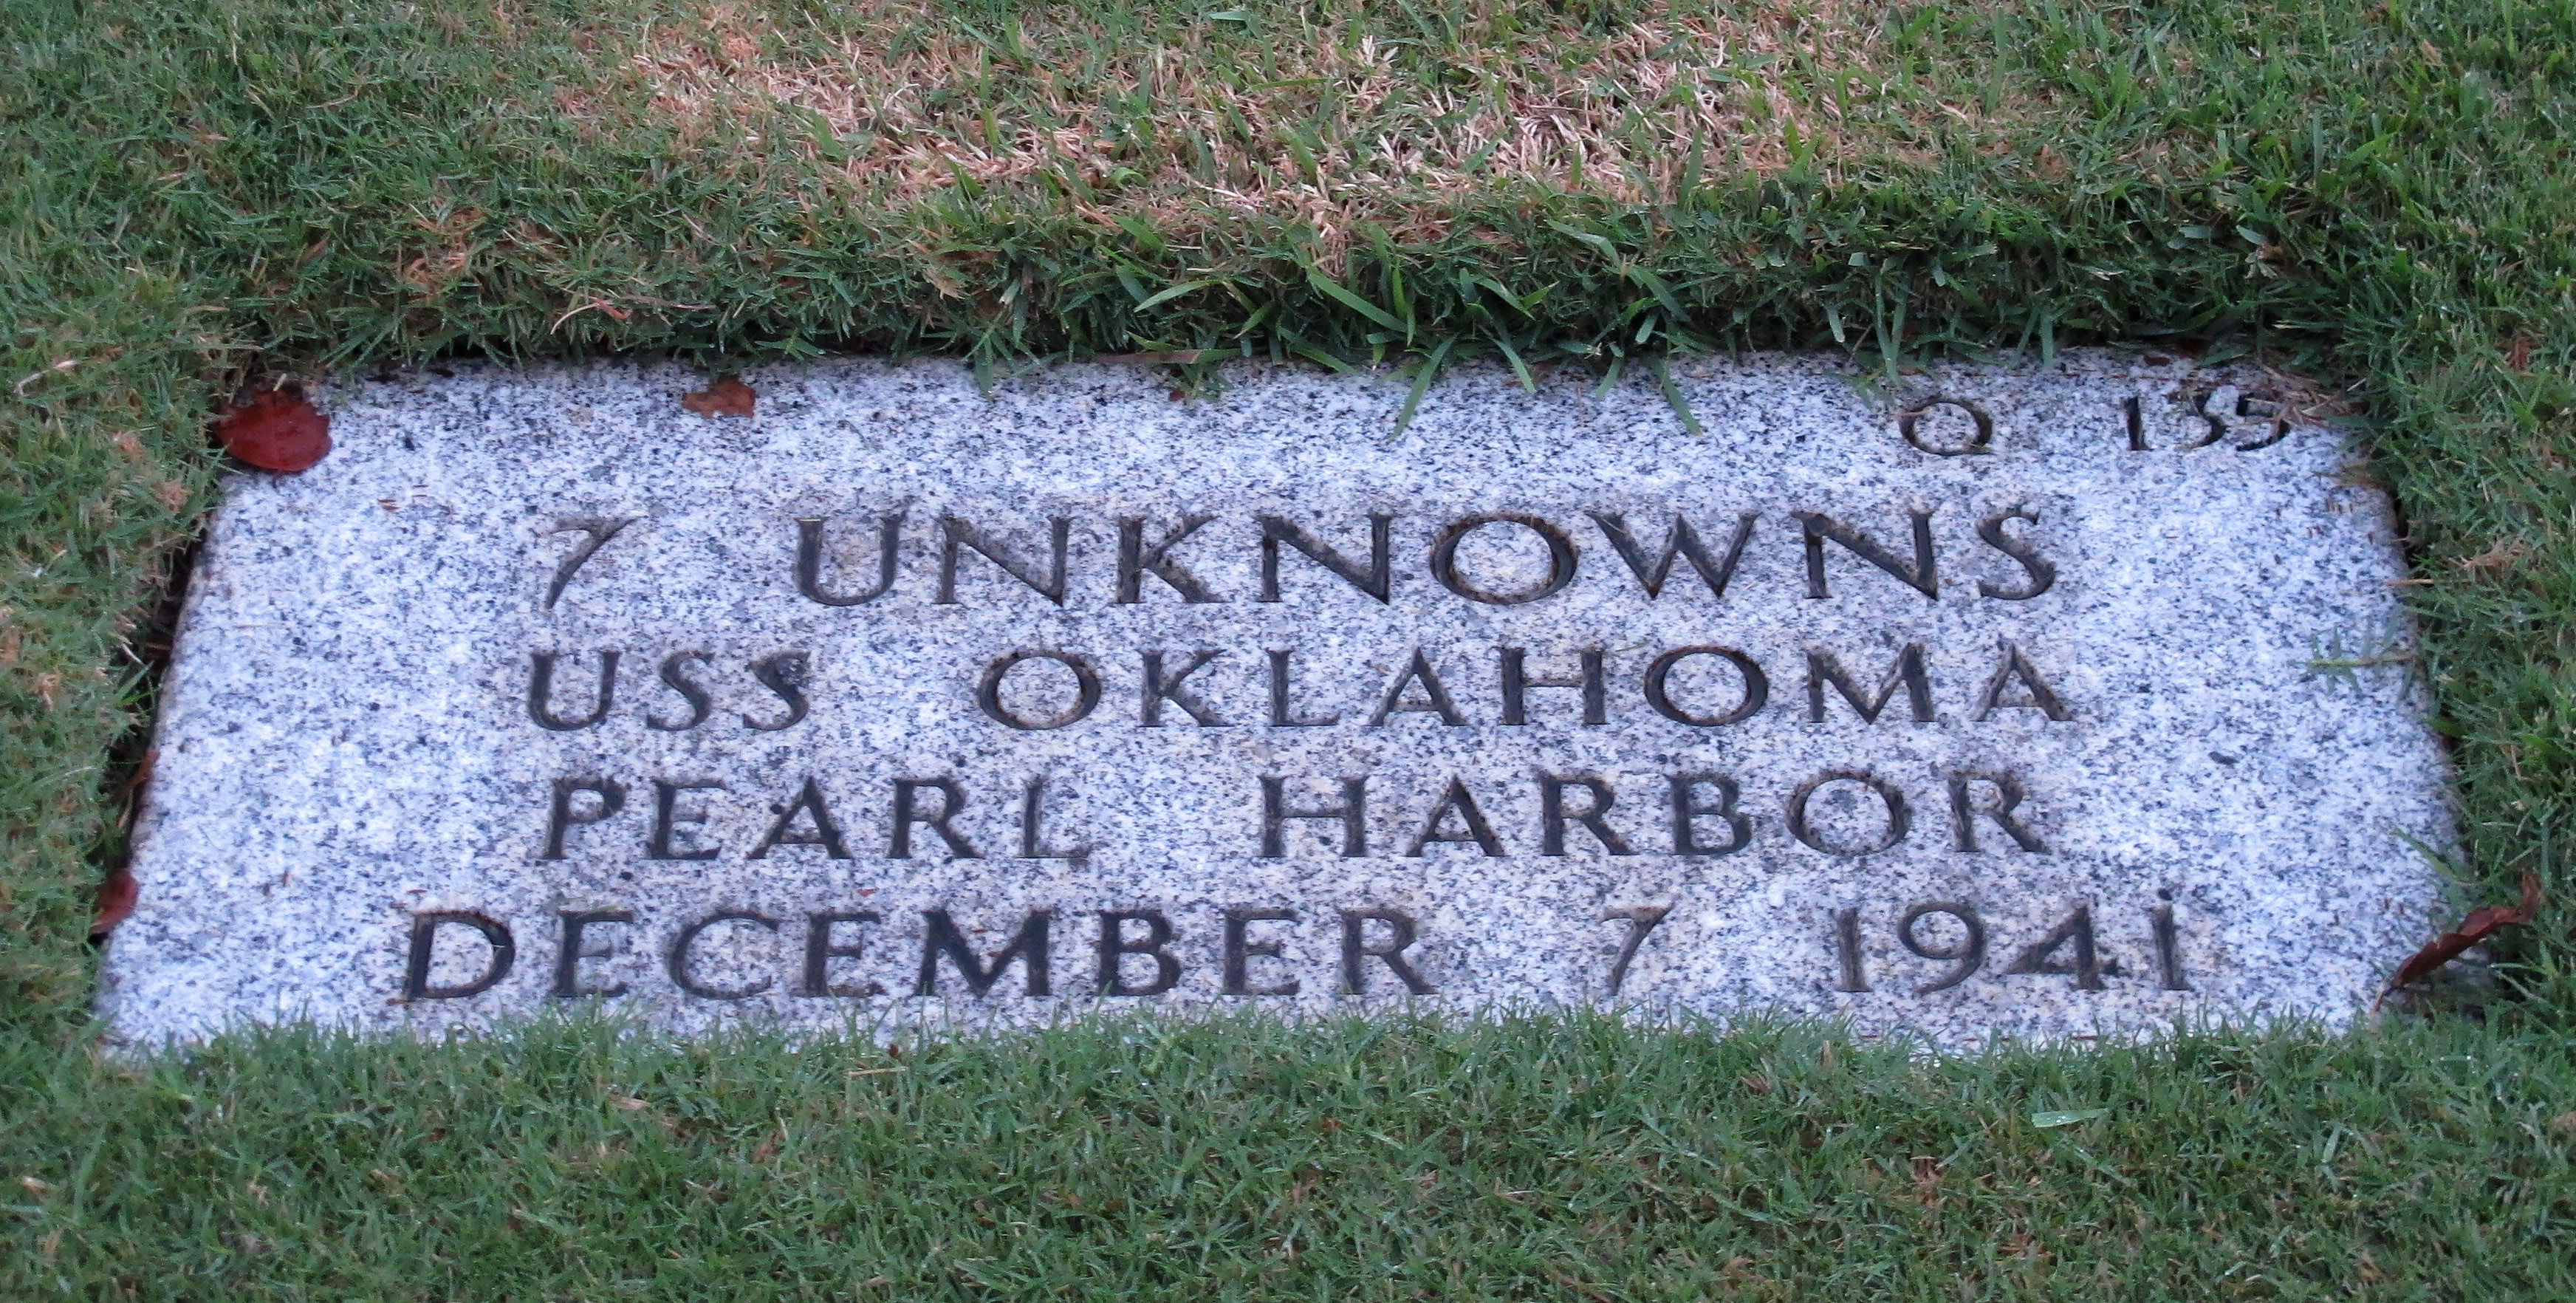 This Dec. 5, 2012 photo at the National Memorial Cemetery of the Pacific in Honolulu shows a gravestone  of 7 unknowns from the USS Oklahoma